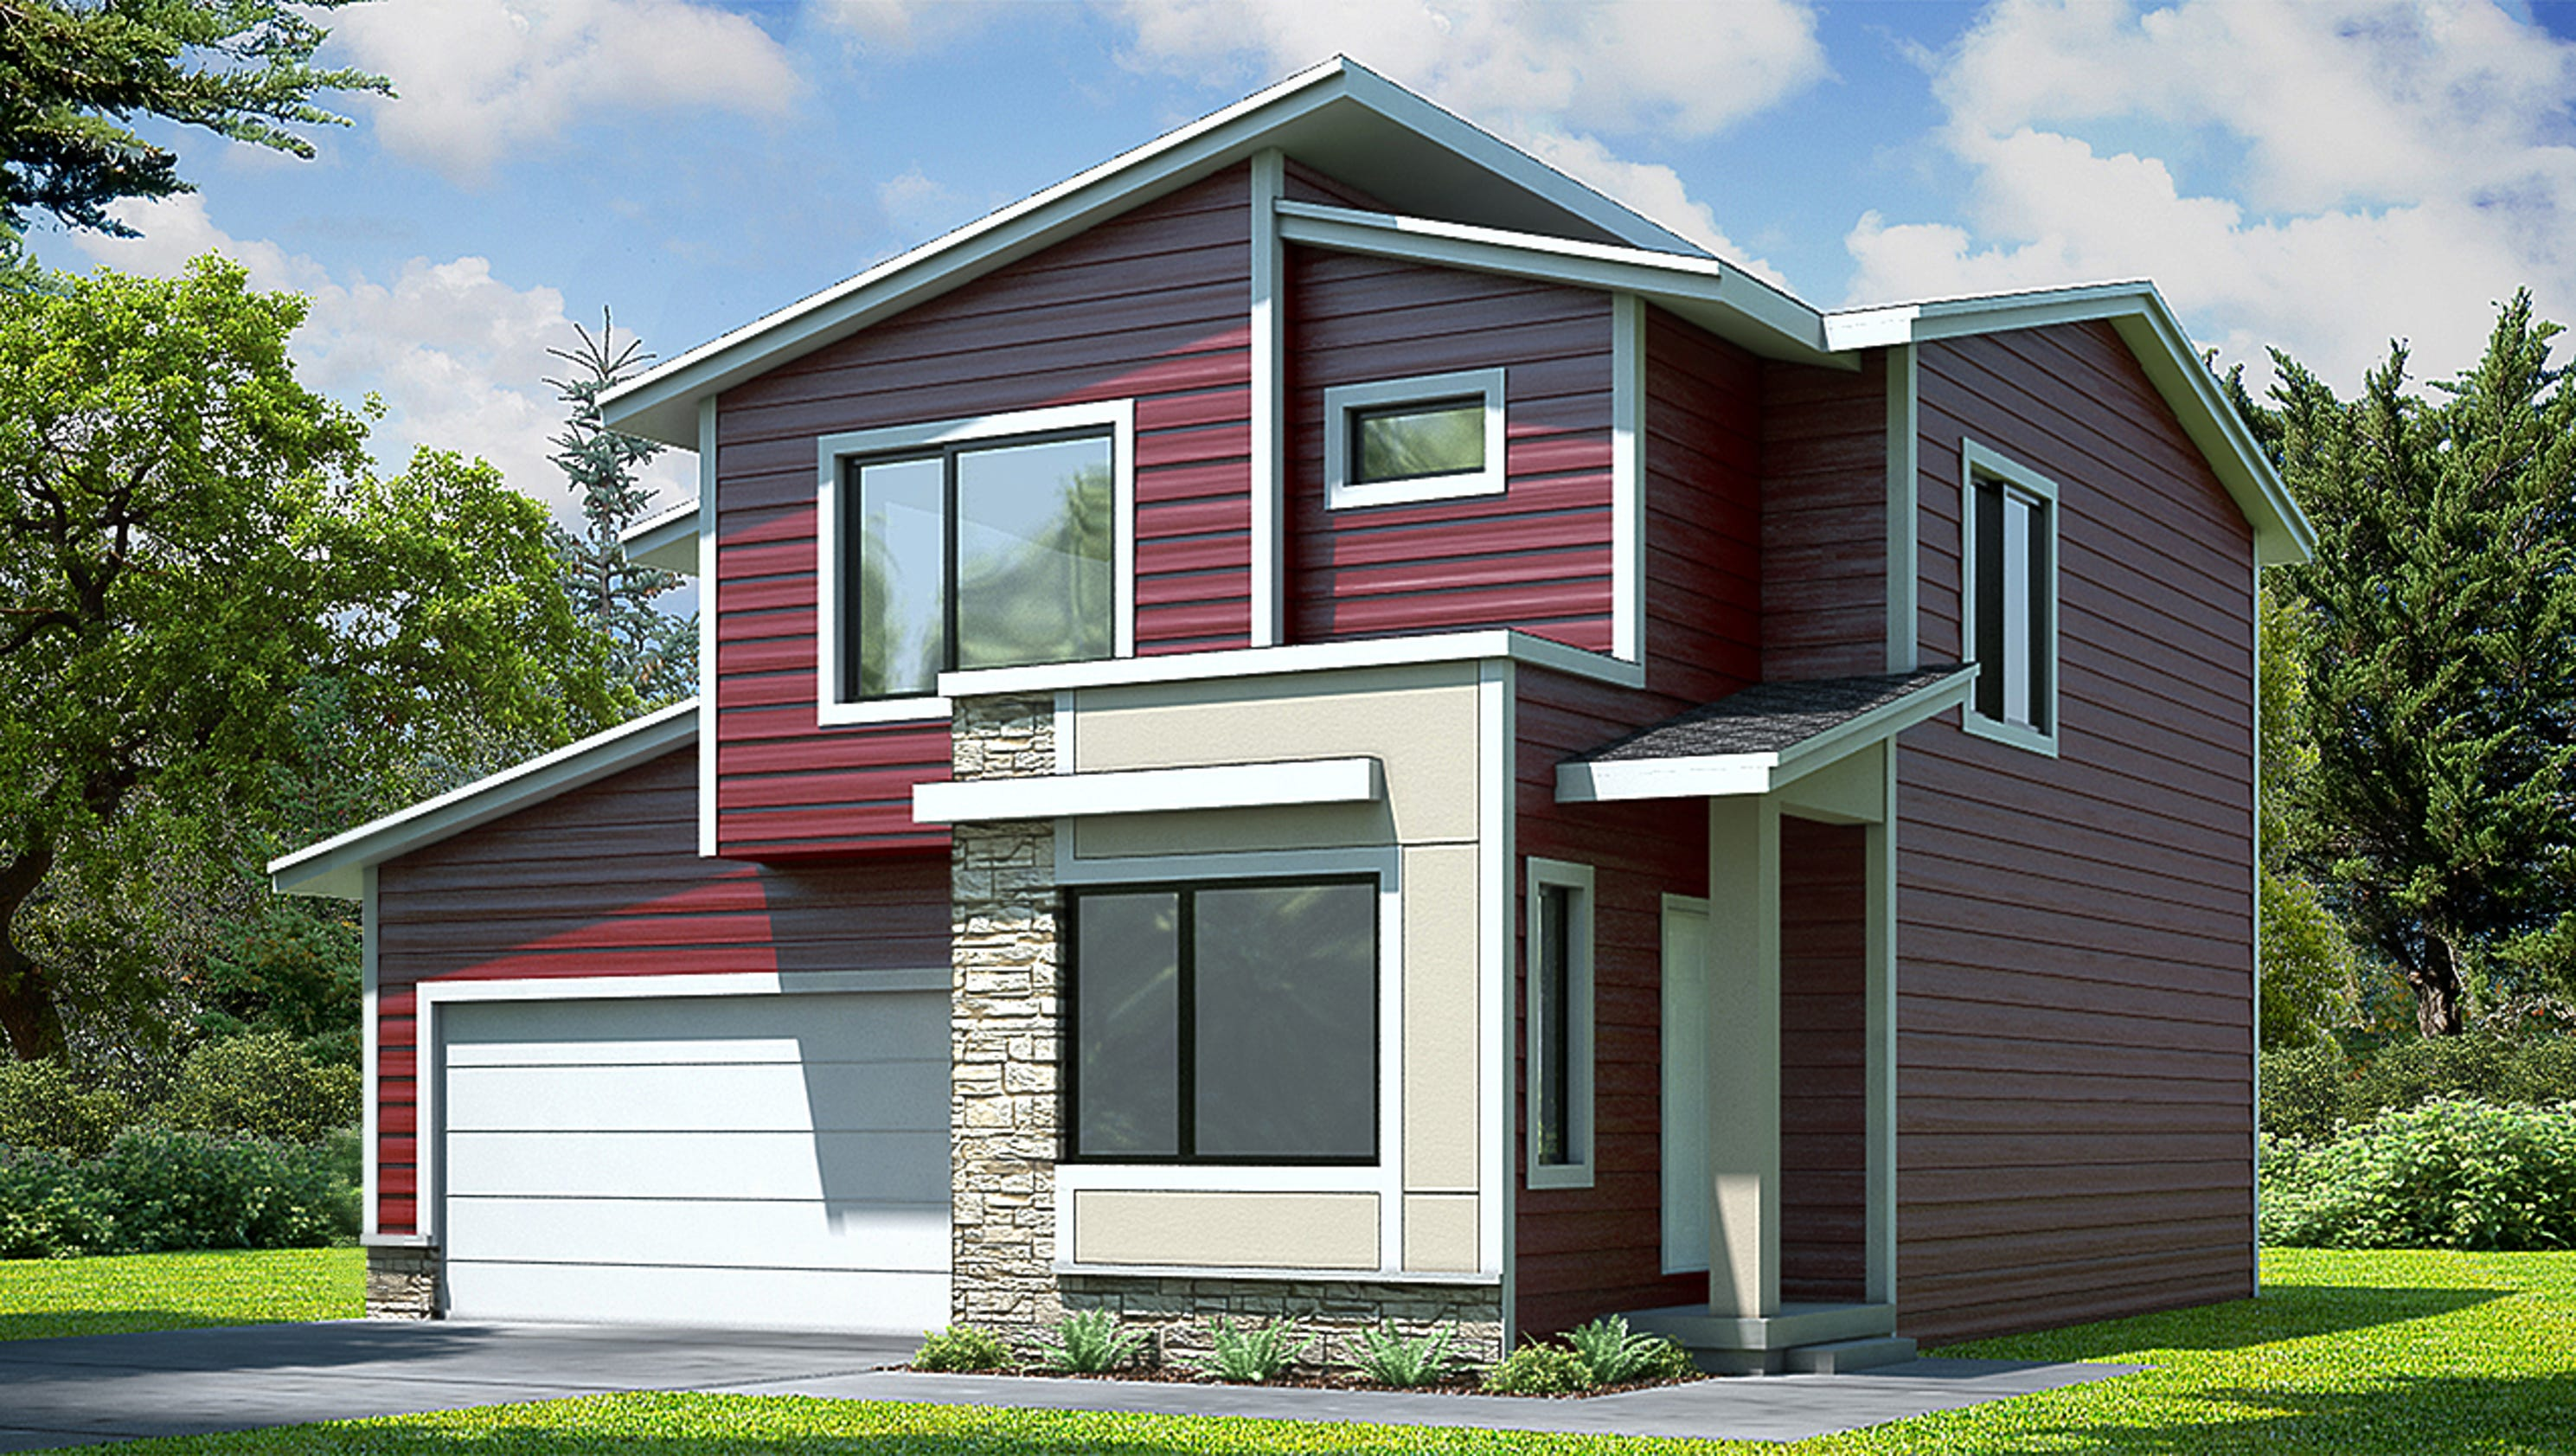 Image Result For Affordable To Build House Plans